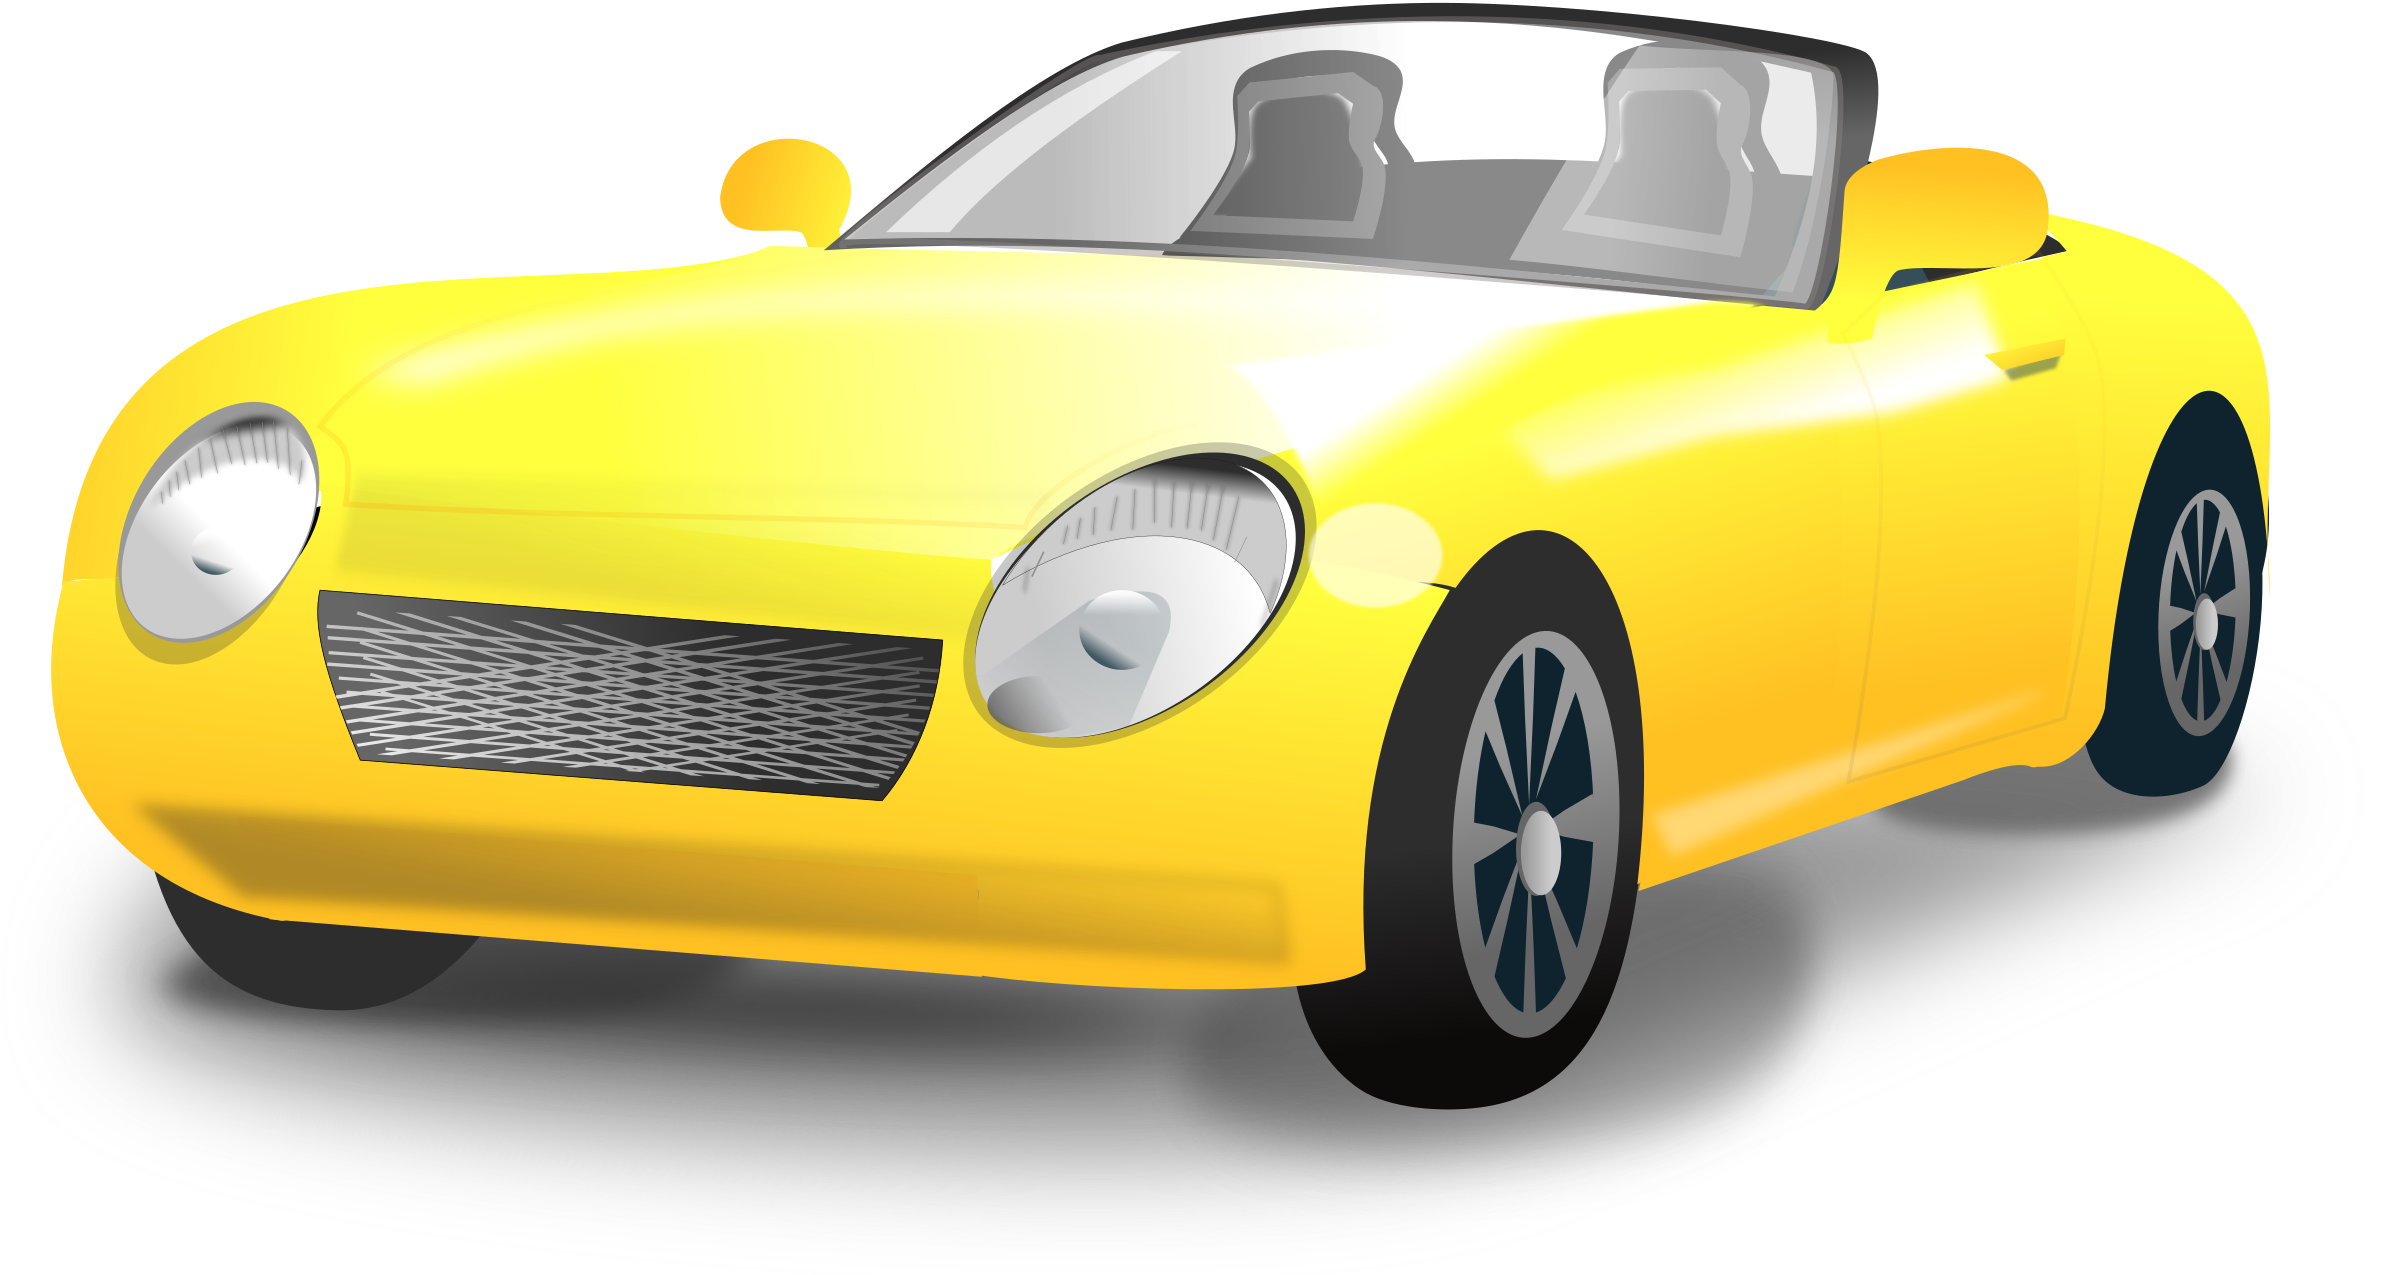 Yellow car clipart transparent download Clipart - Yellow Convertible sports car transparent download